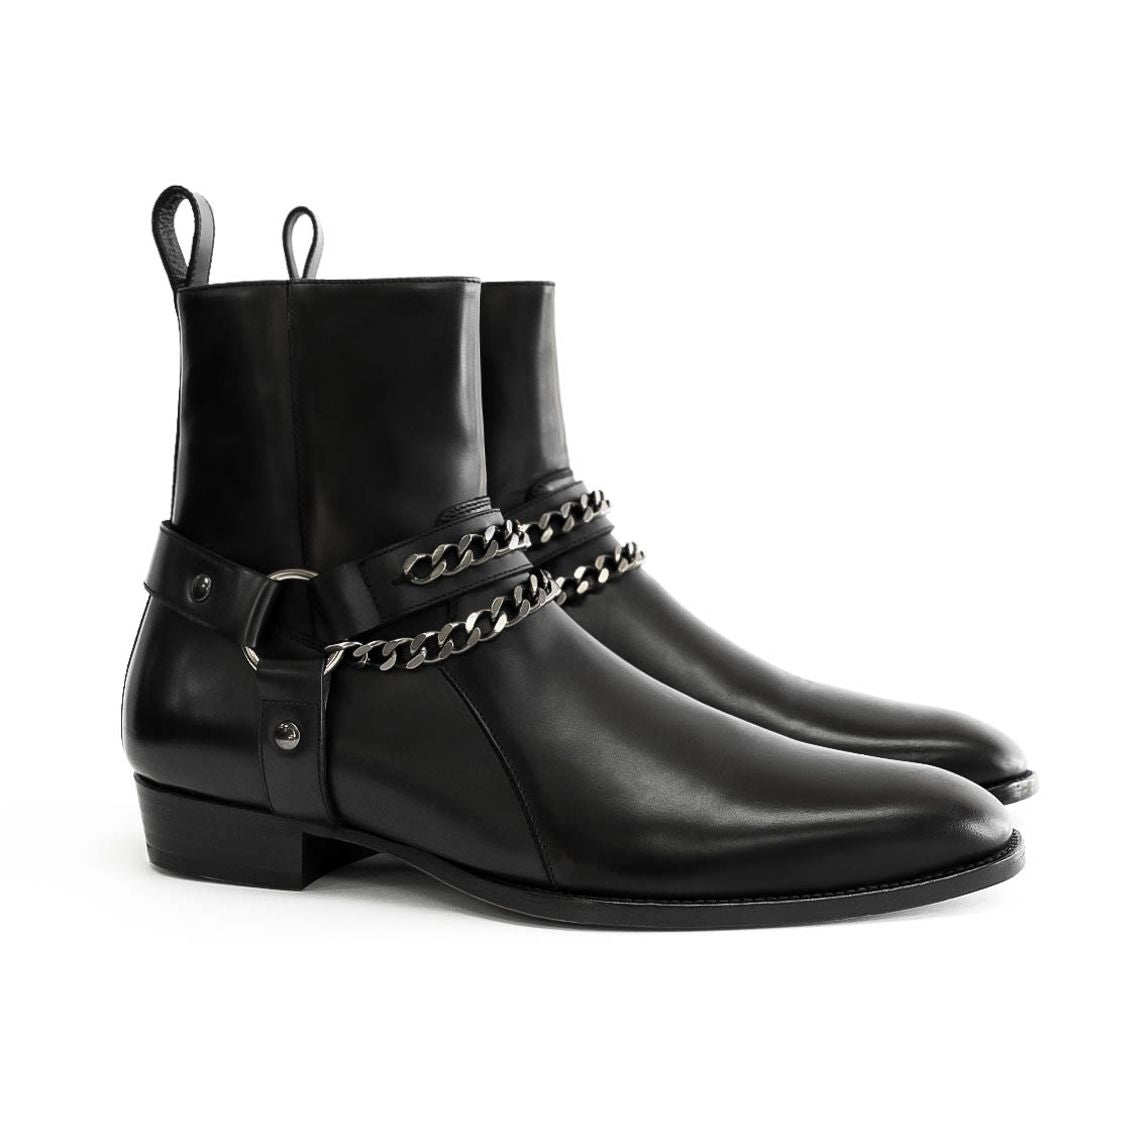 THE LEATHER HENRIK HARNESS BOOTS